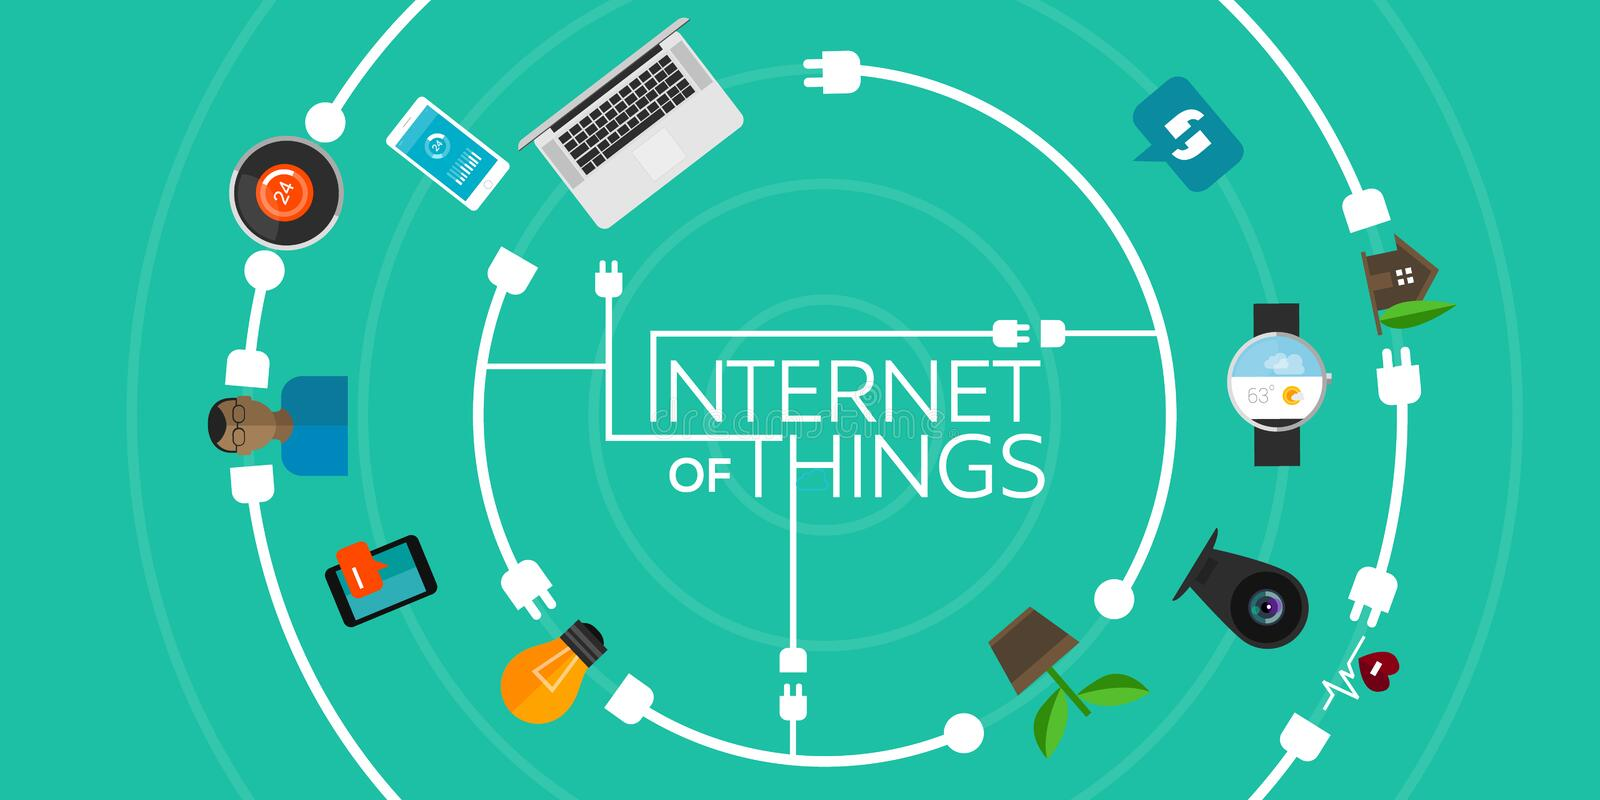 Internet of things royalty free illustration